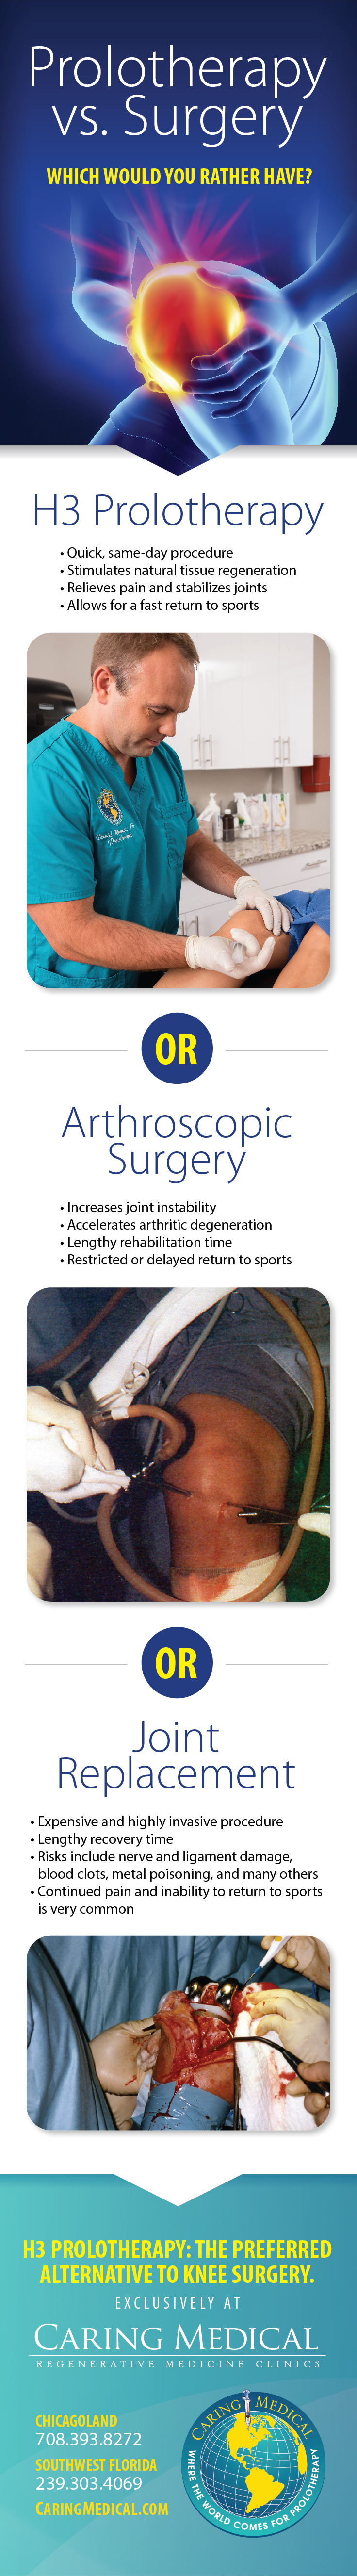 Research: For many, arthroscopic knee surgery does not work and in